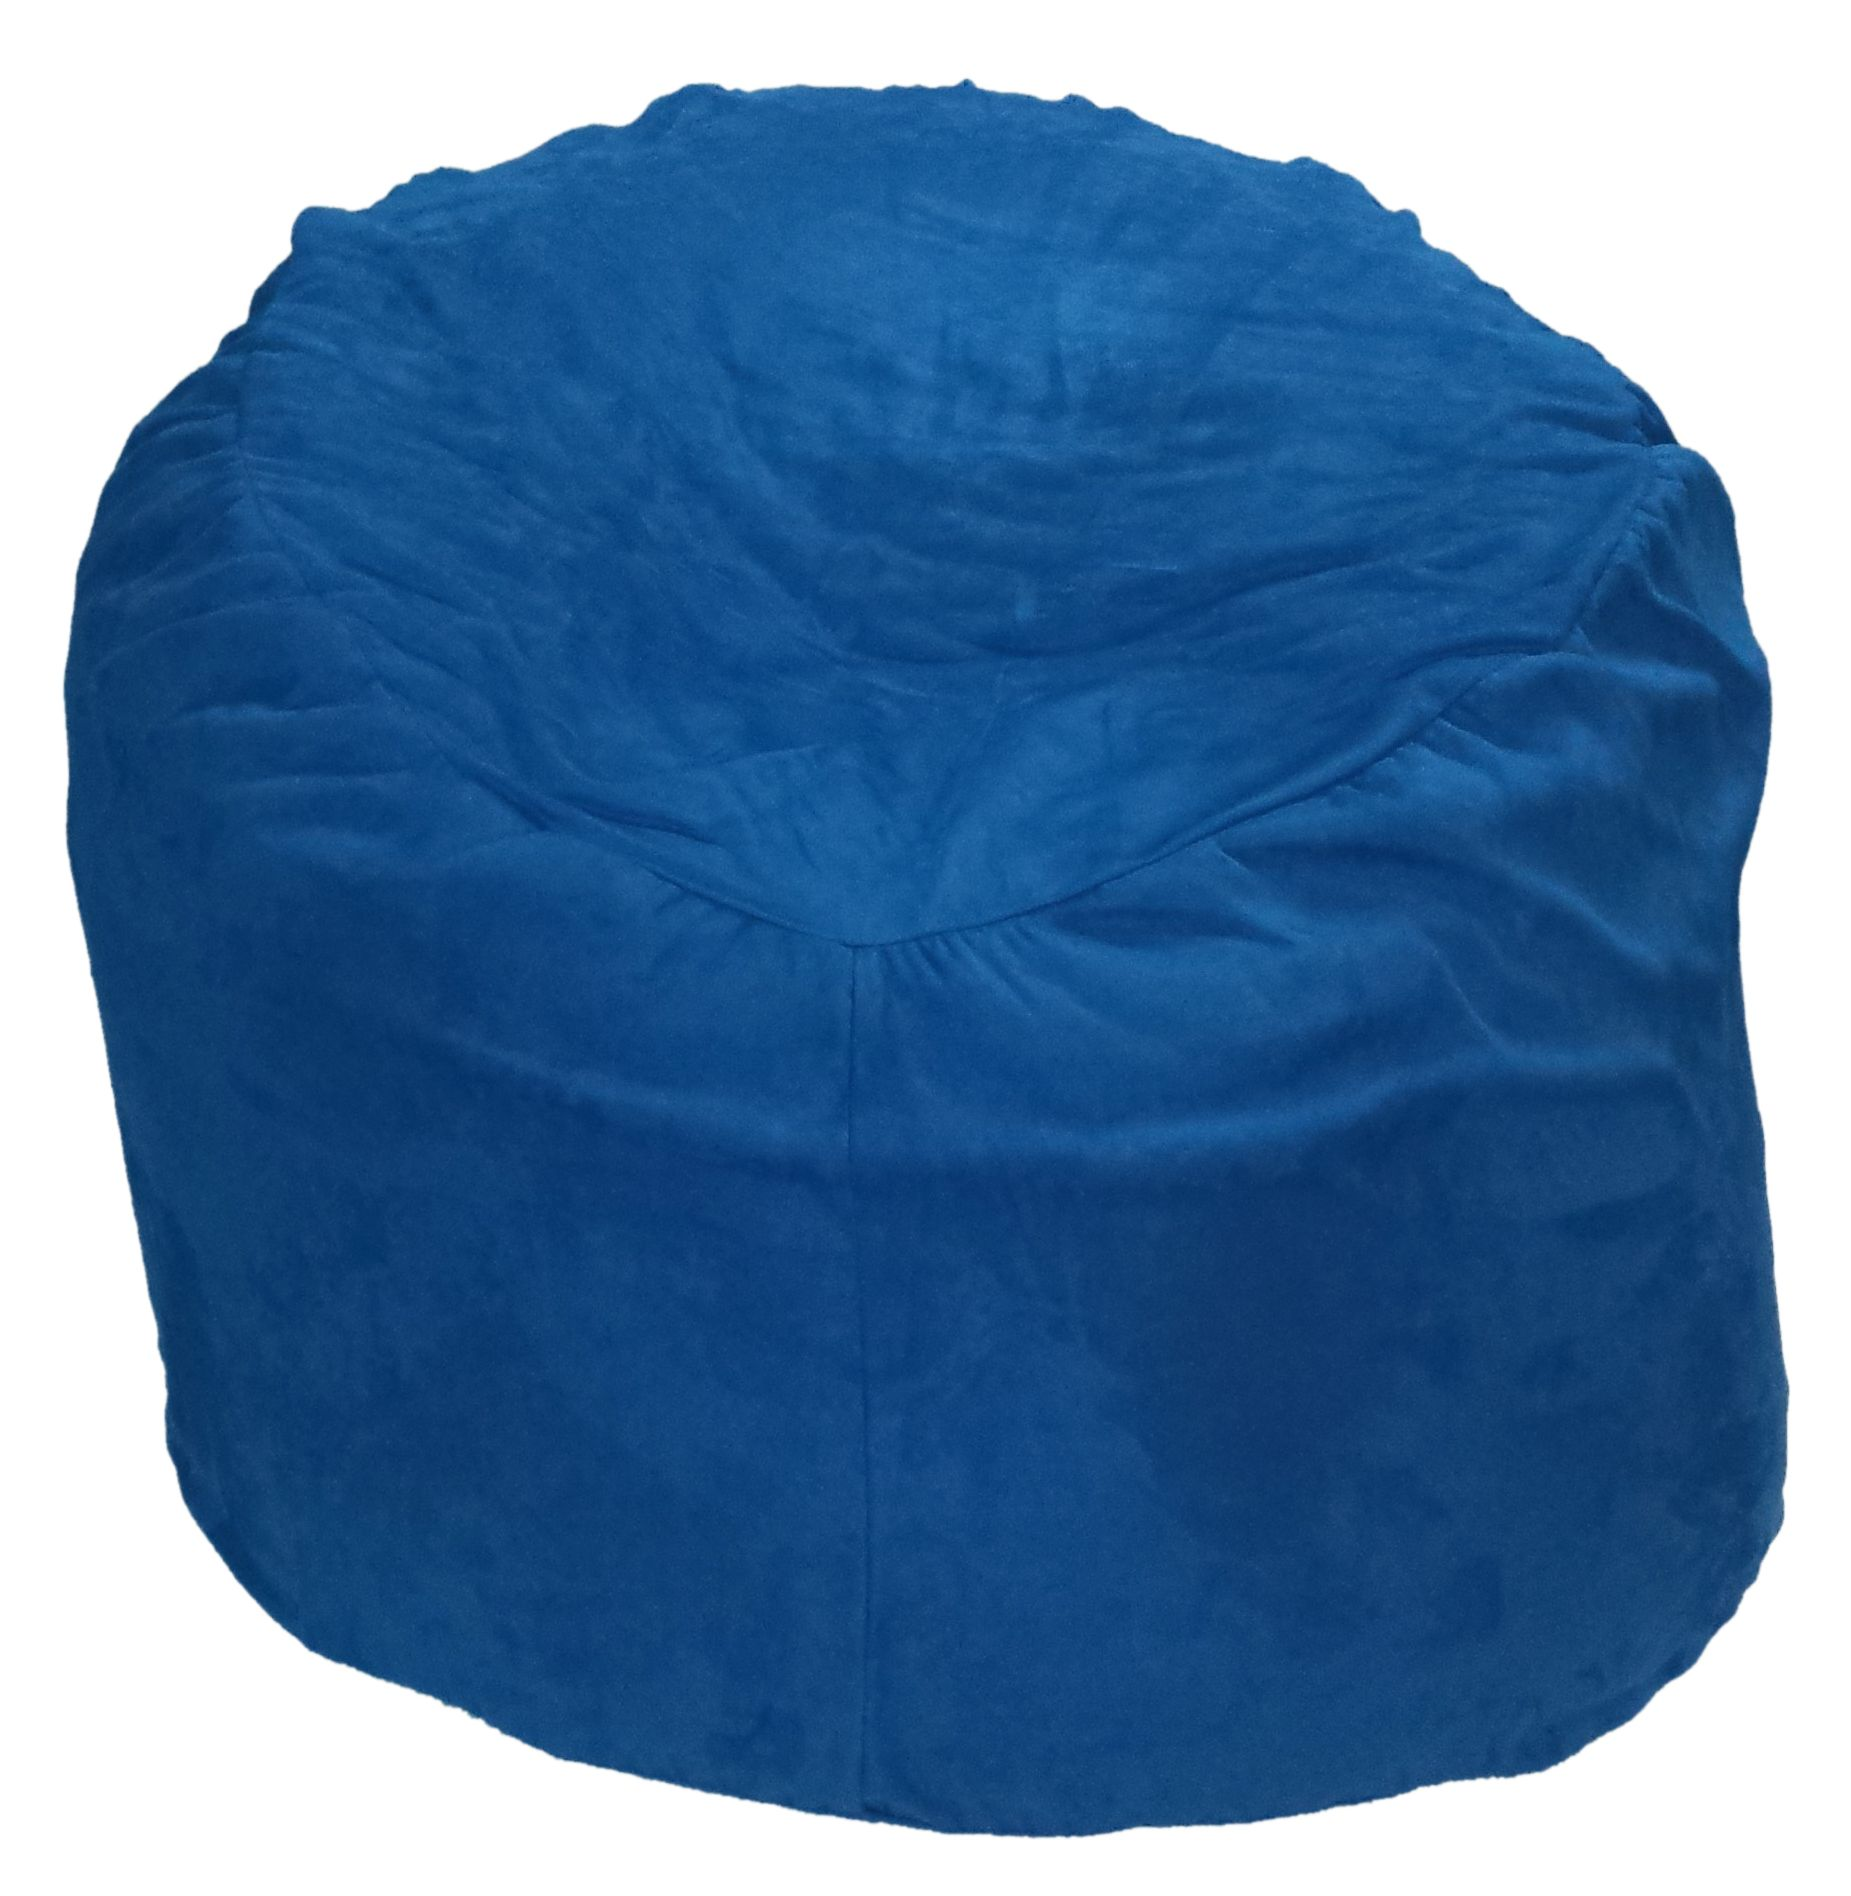 Sea Blue Micro Fiber Beanbag Large and luxurious. This